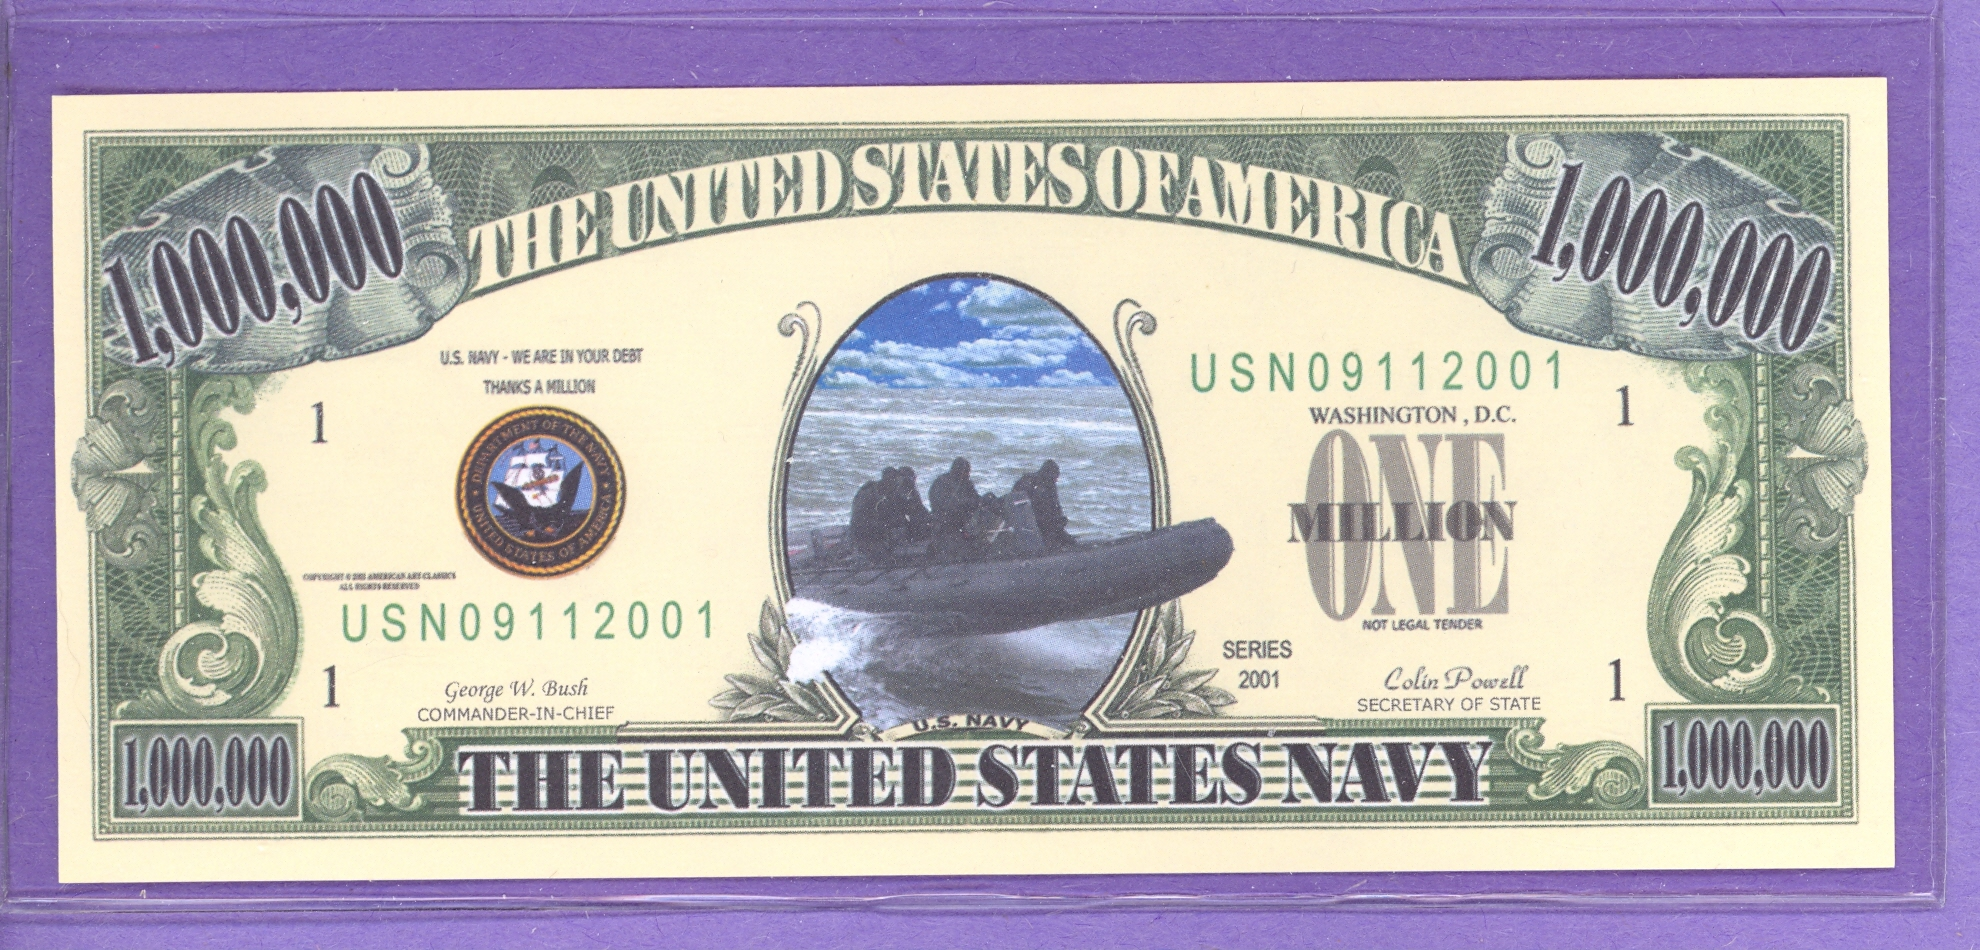 US Air Force 09/11/ 2001 Fantasy Note